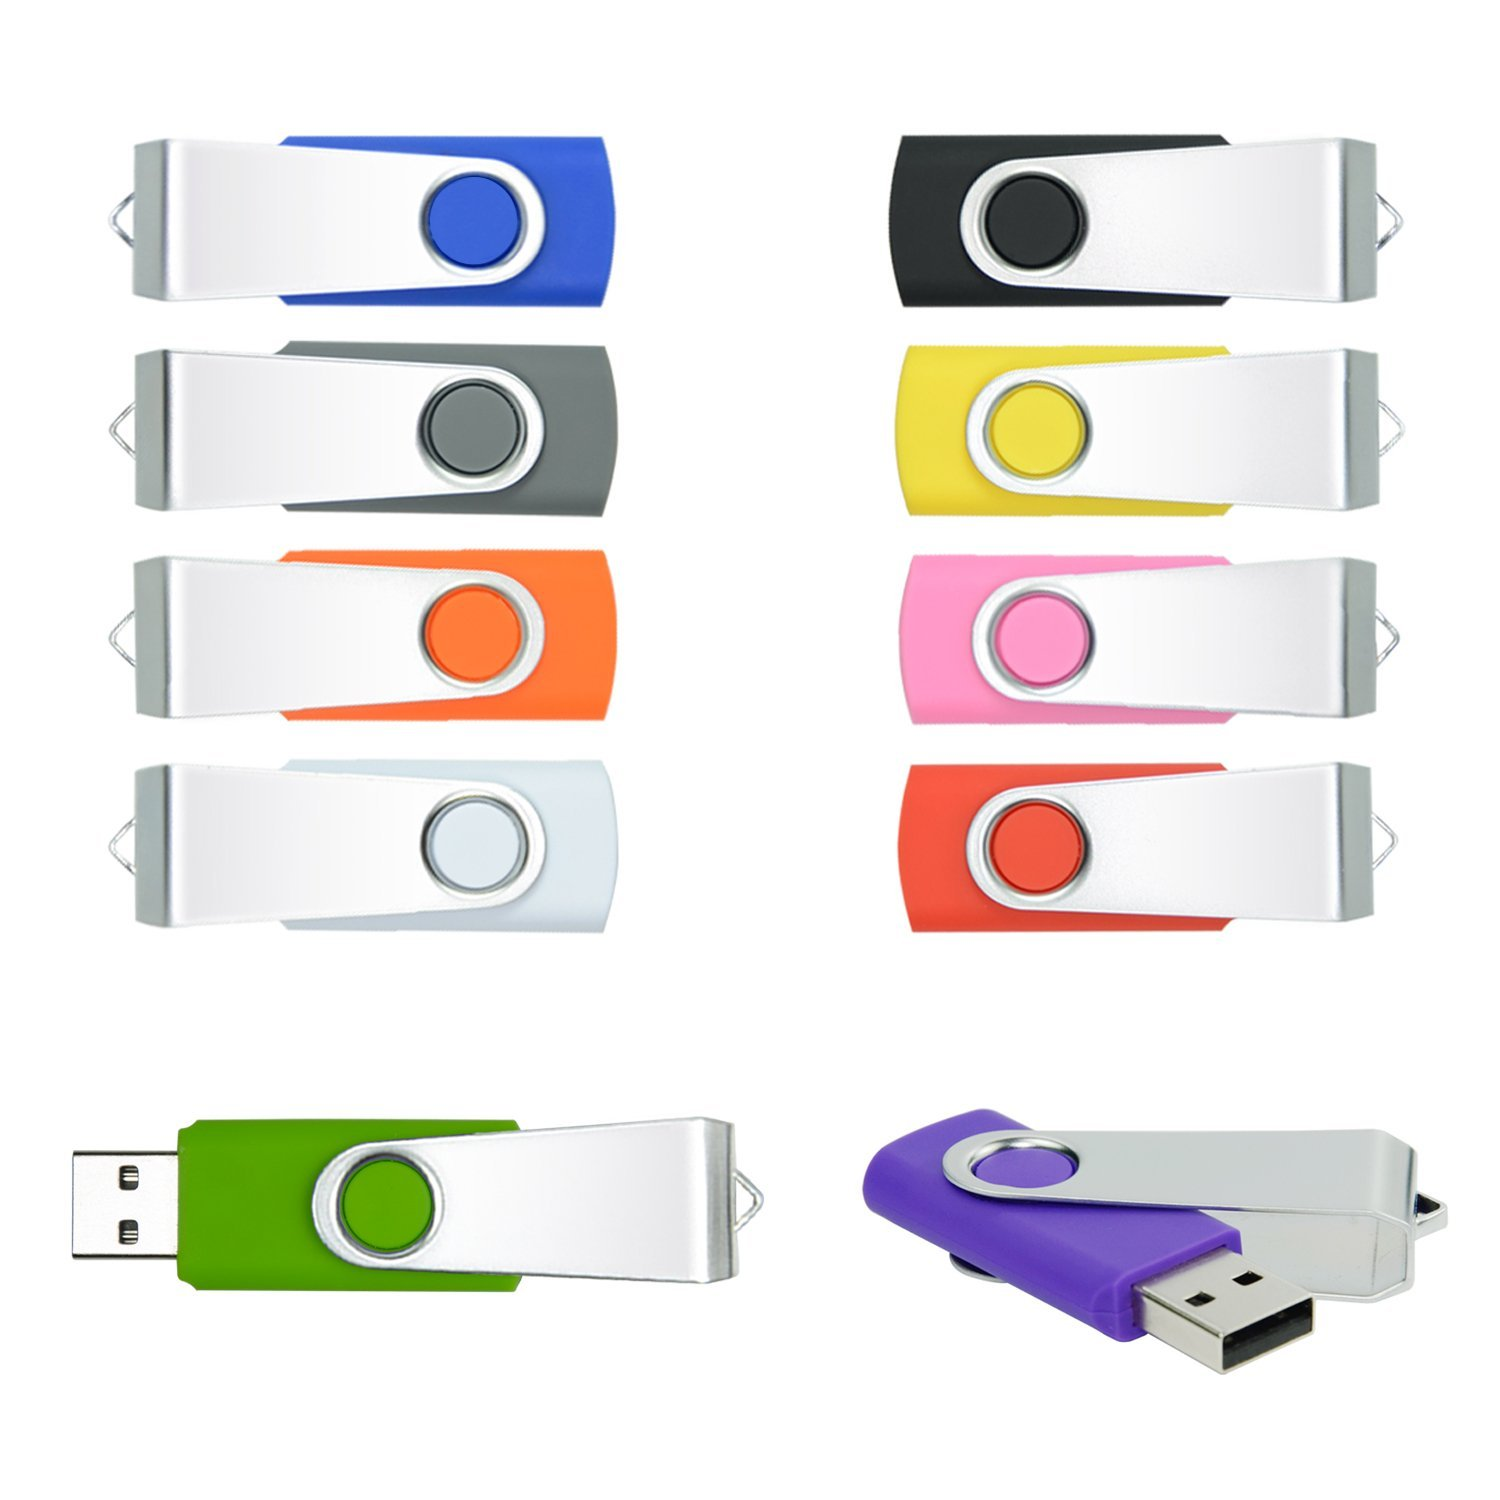 PORTWORLD 16GB USB 2.0 Flash Drive with Lanyards Multicolor (10 Pack)